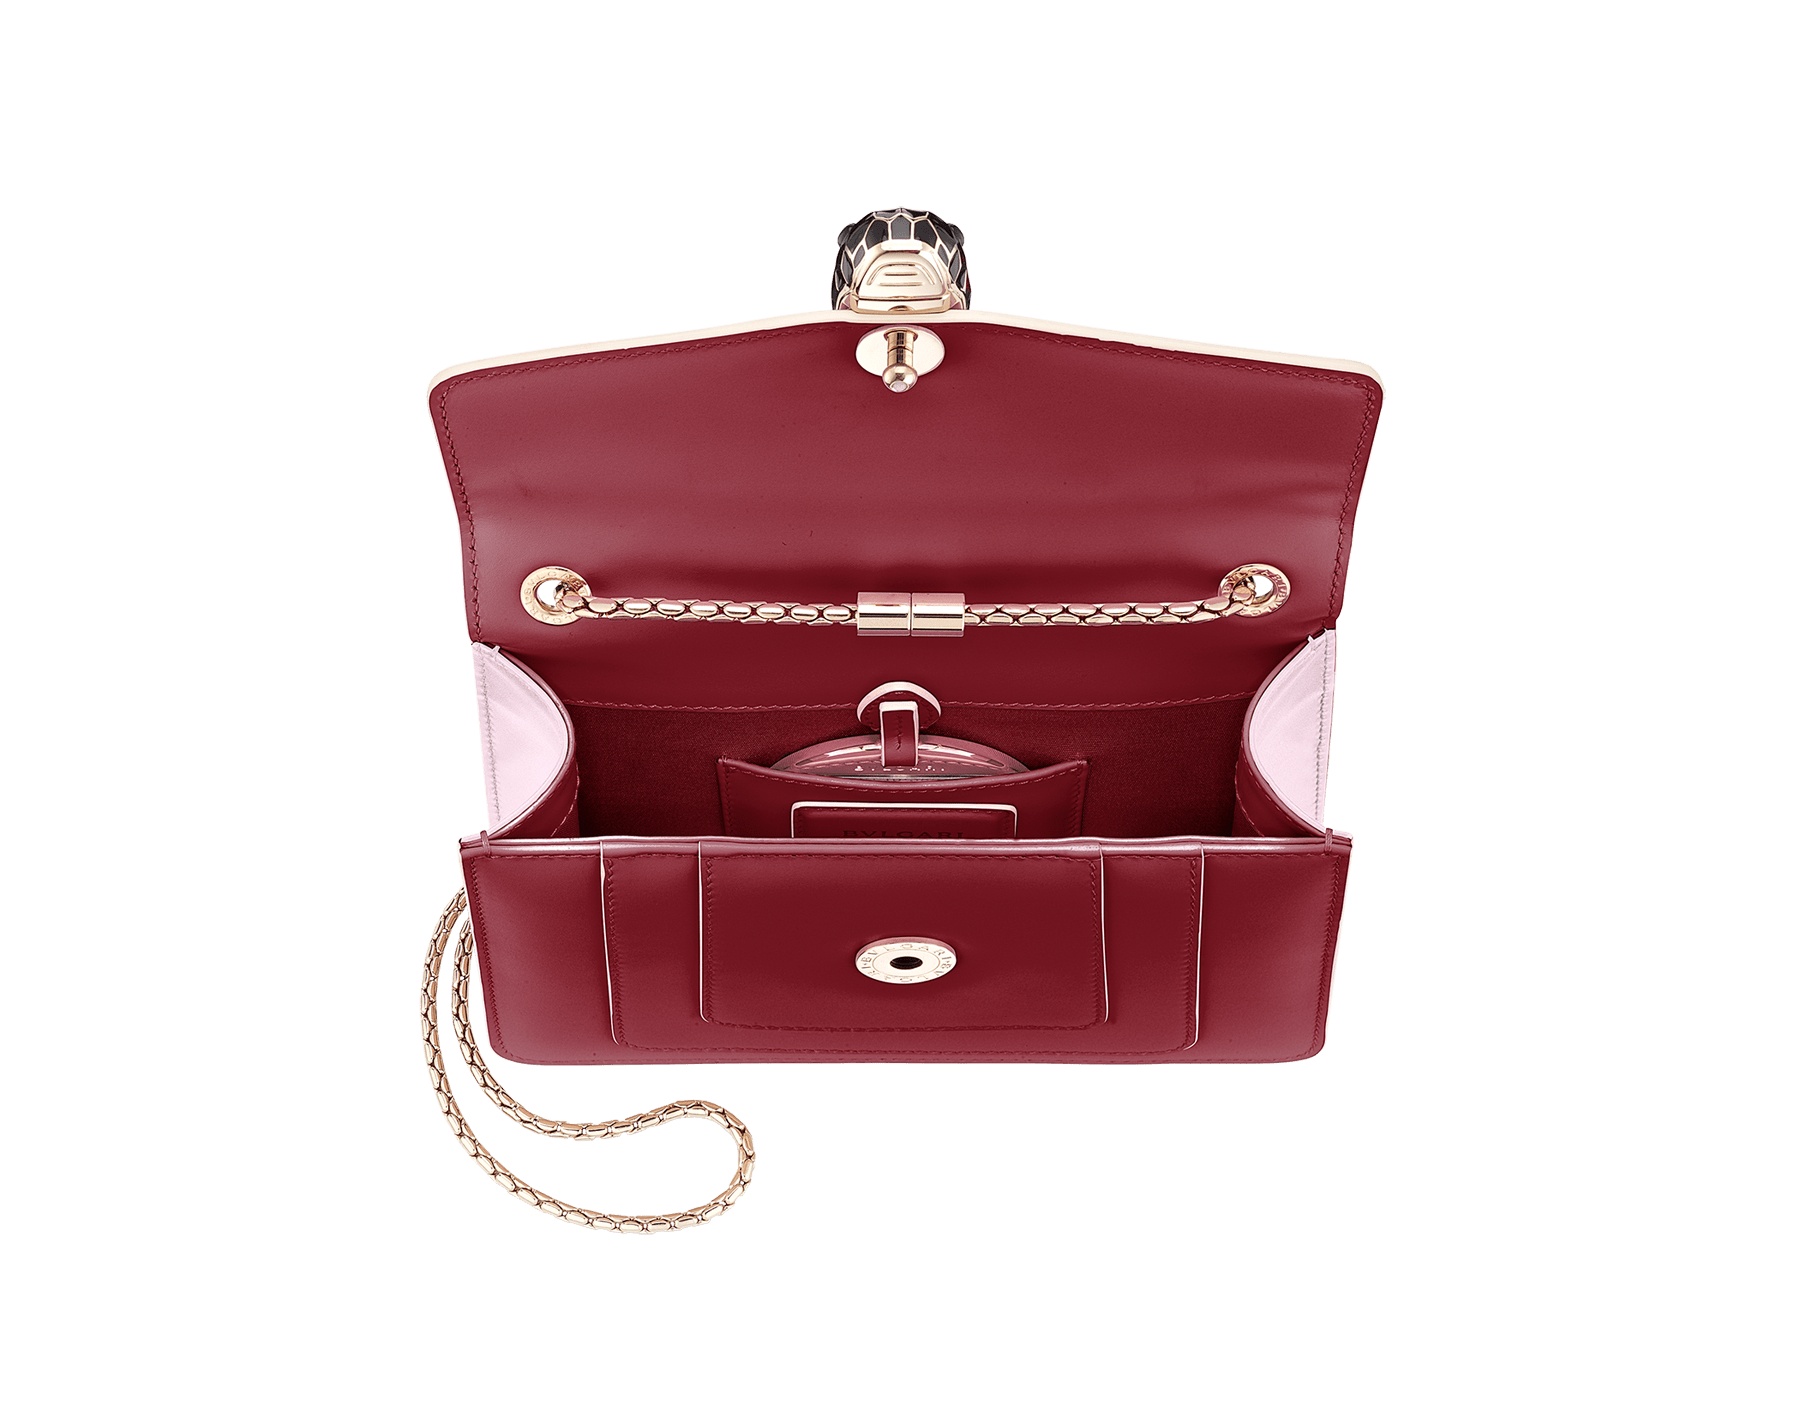 Serpenti Forever crossbody bag in Roman garnet calf leather, with rosa di francia calf leather sides. Iconic snakehead closure in light gold plated brass embellished rosa di francia and black enamel and black onyx eyes . 289035 image 7